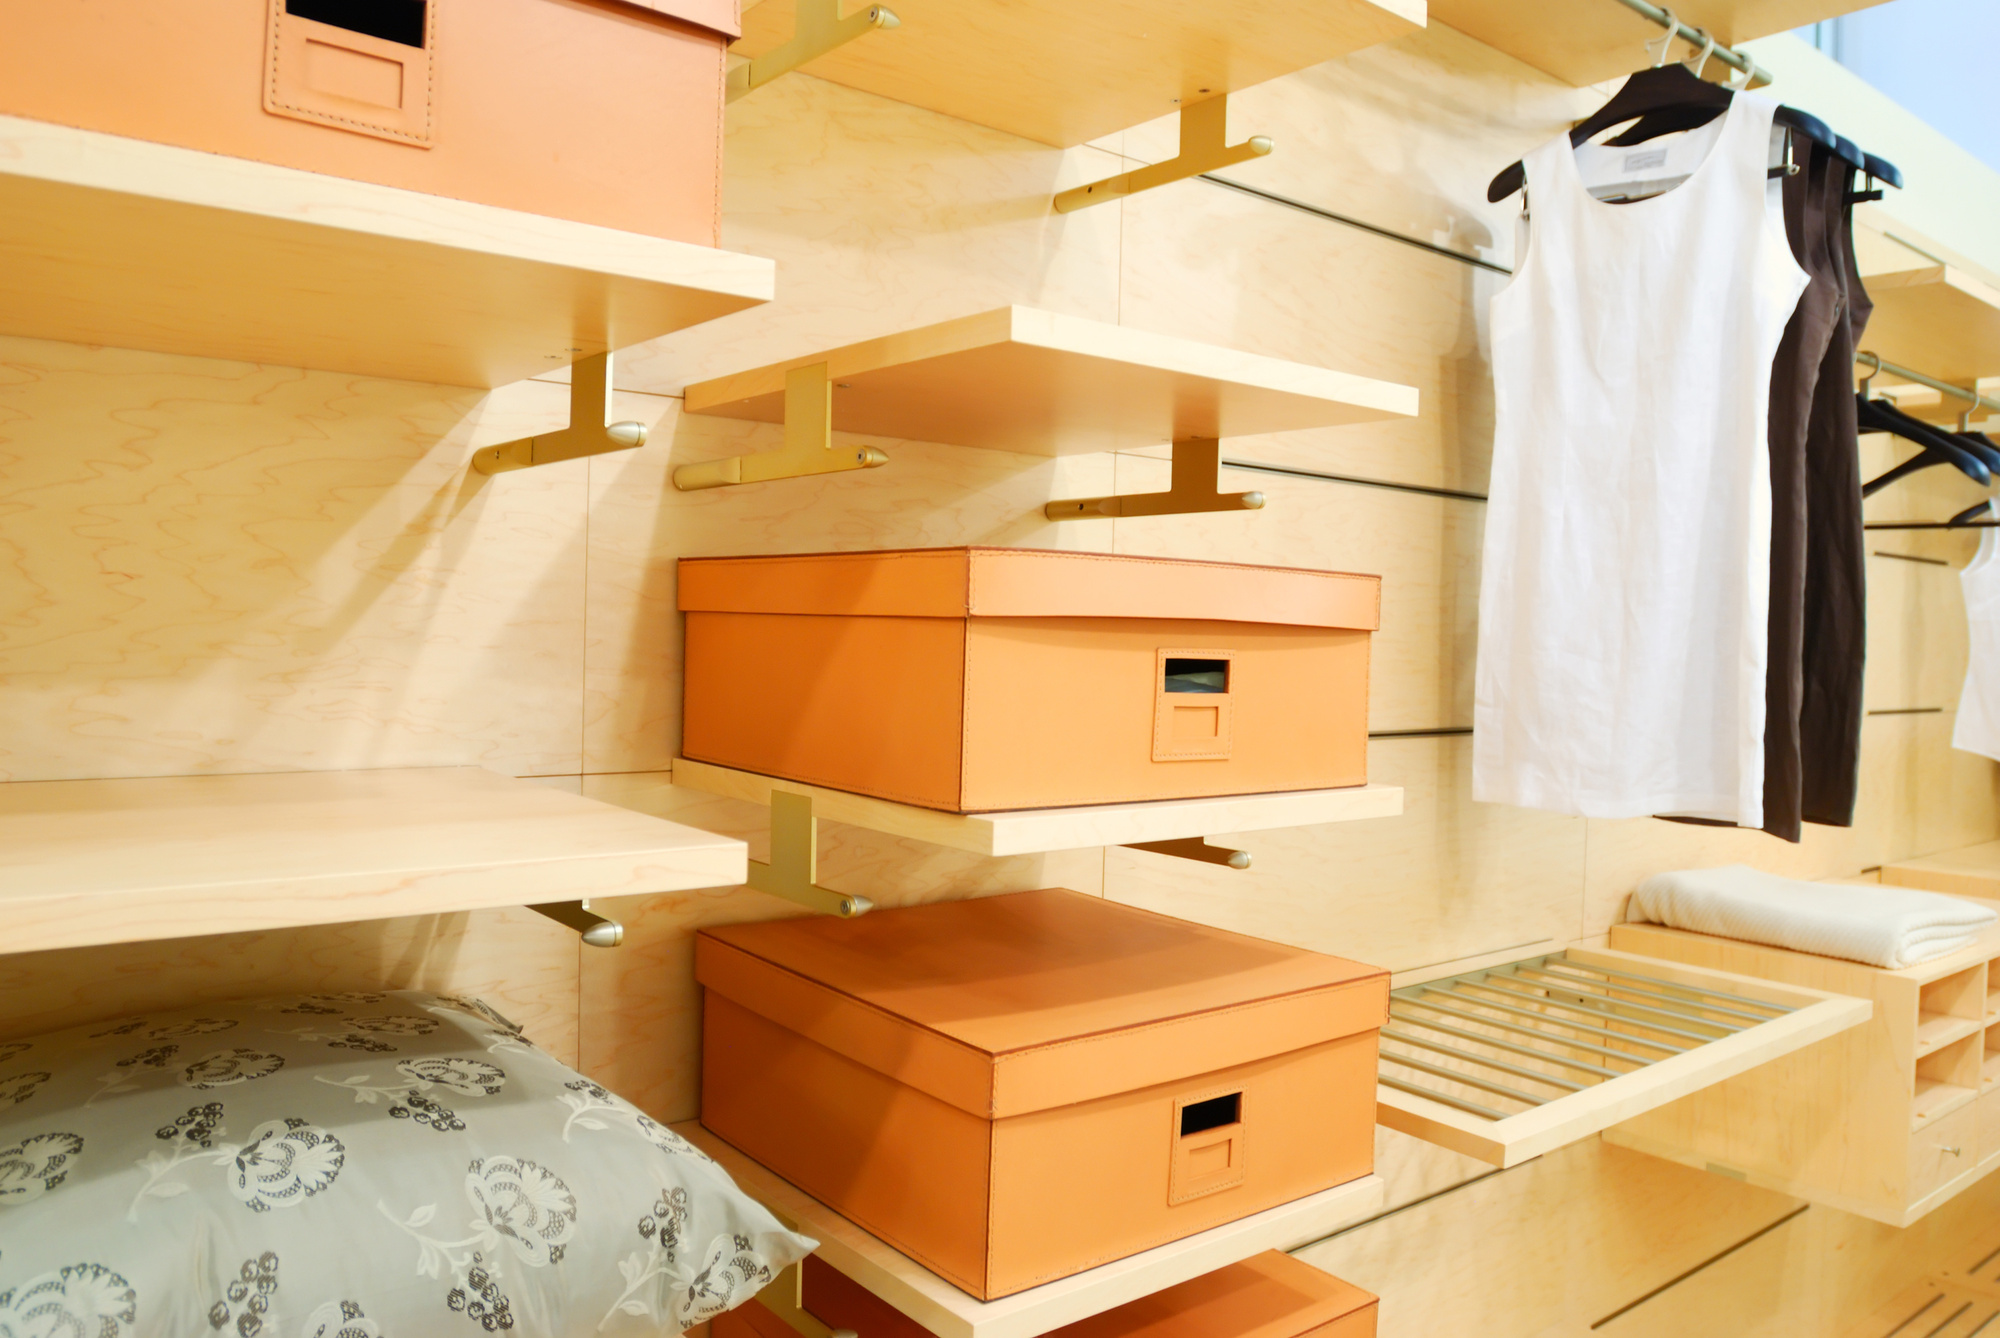 3 Storage Solutions For When You Live in an Apartment